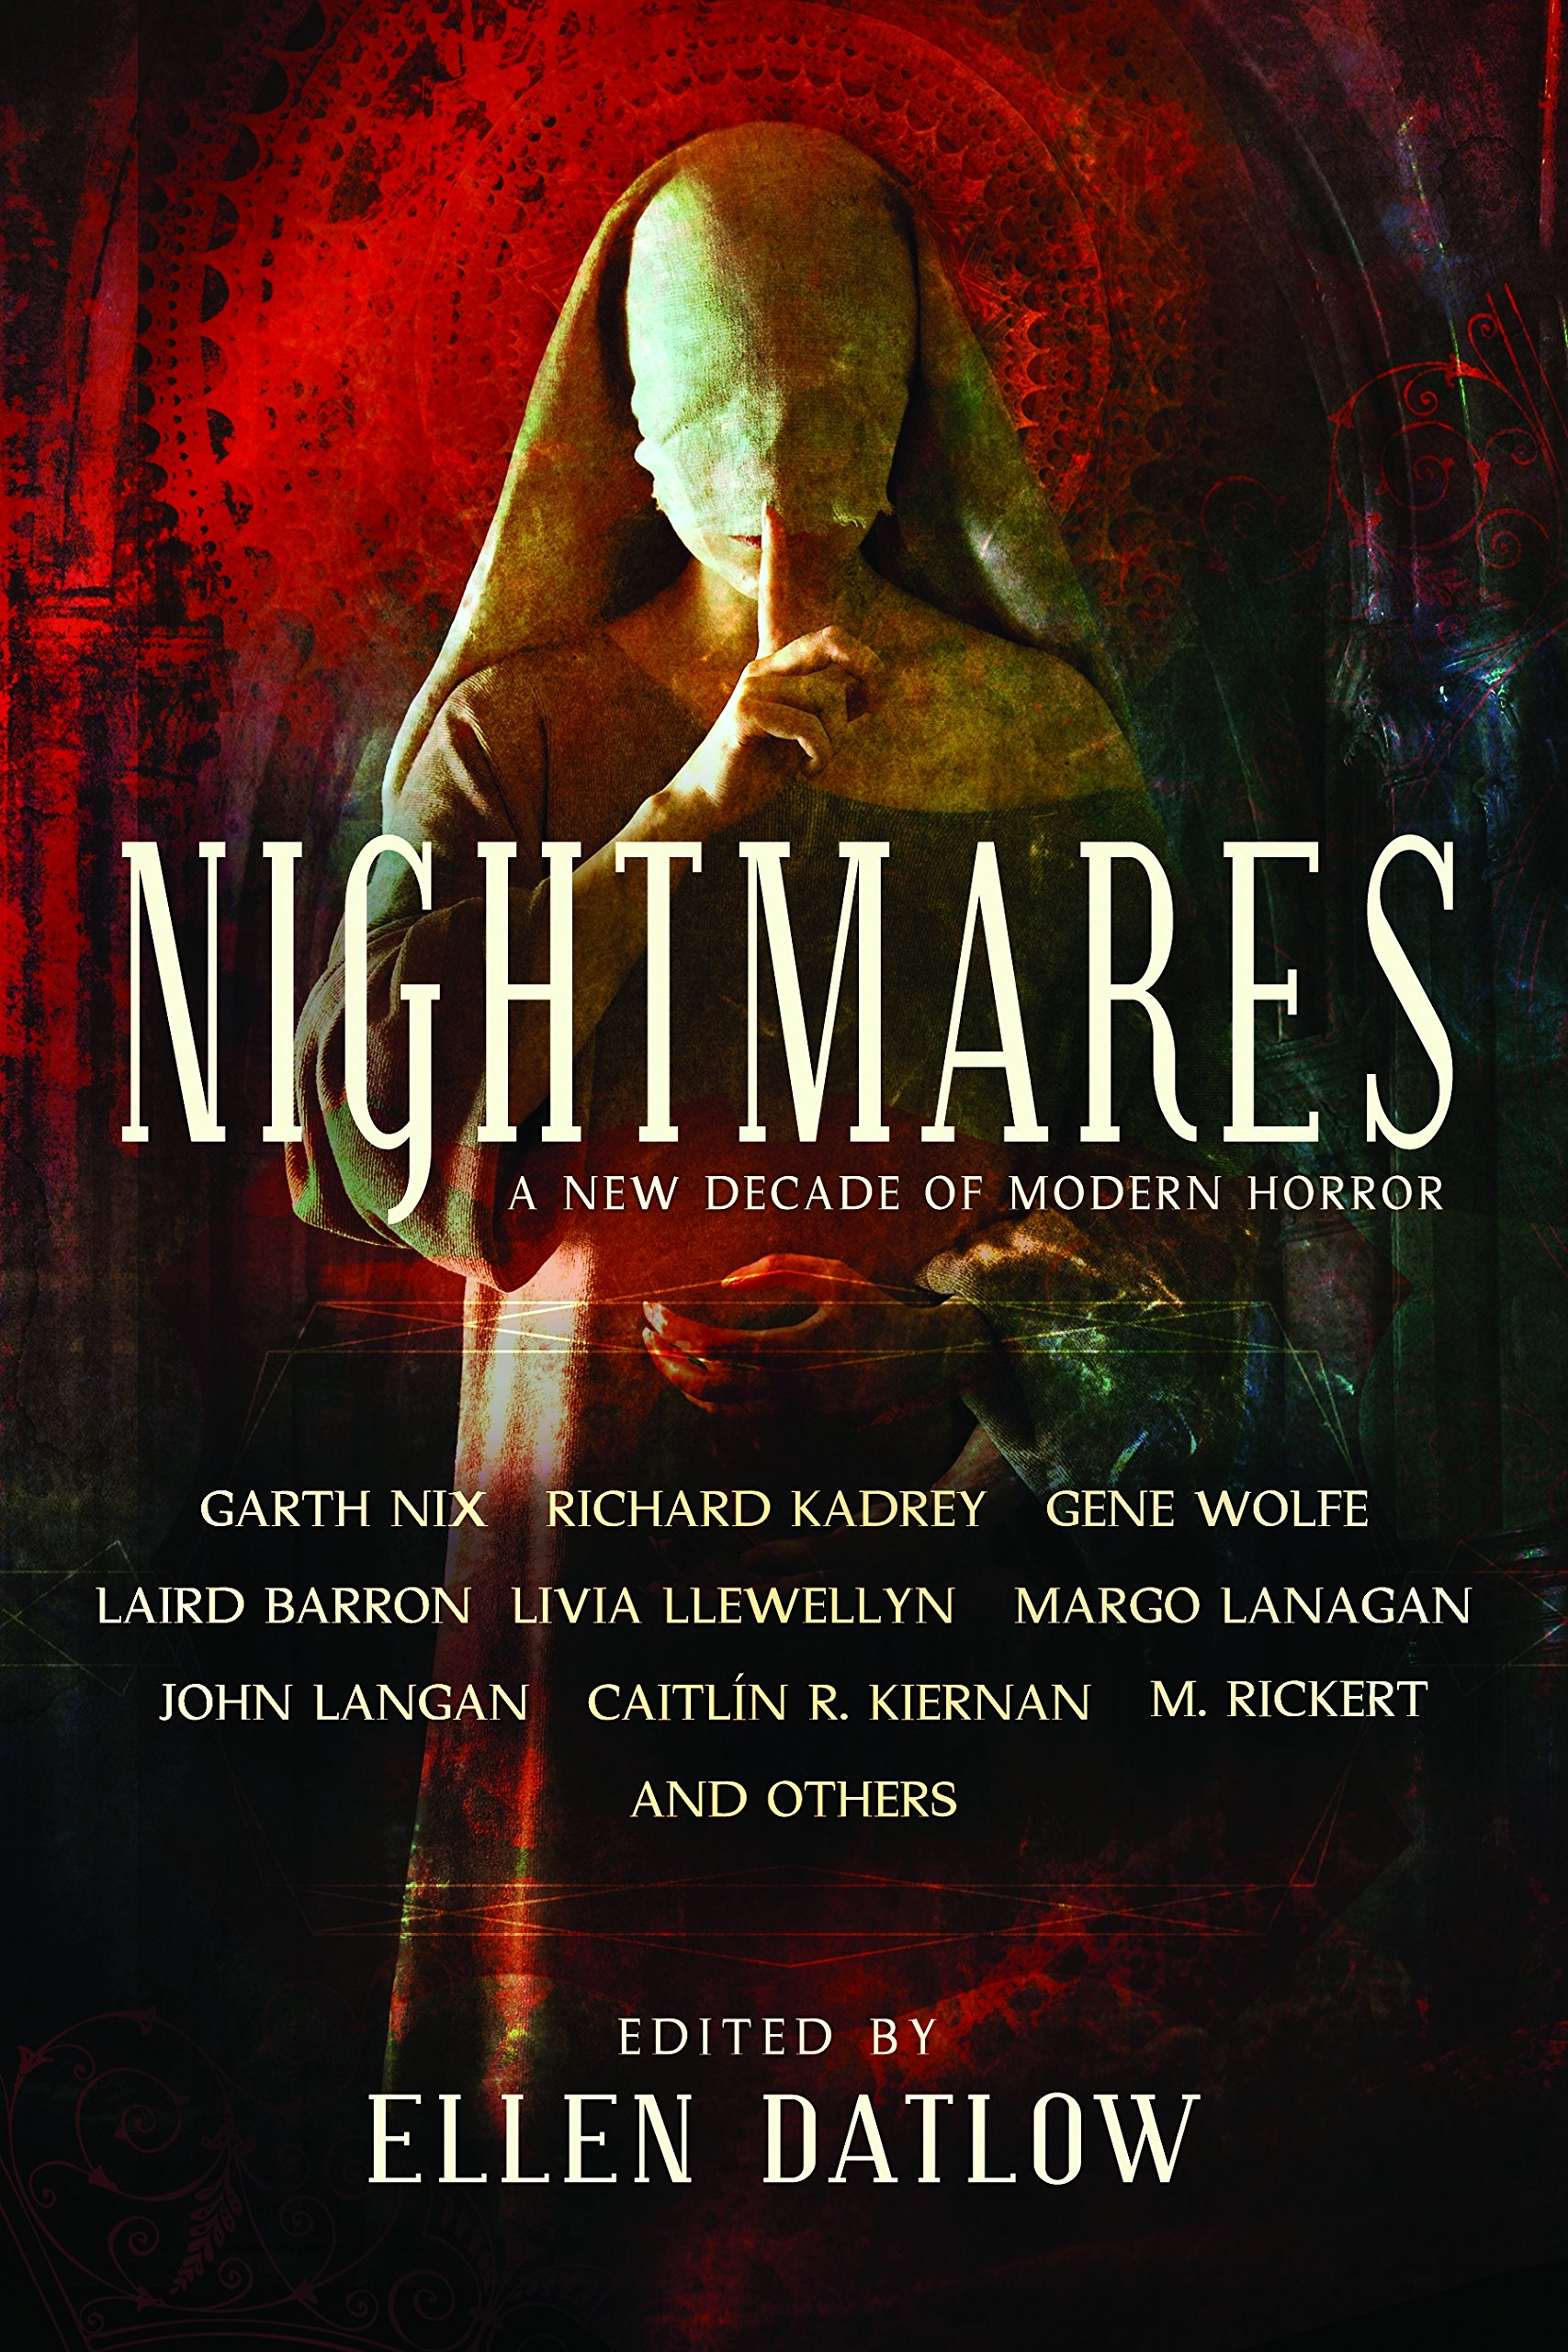 Nightmares: A New Decade of Modern Horror pdf